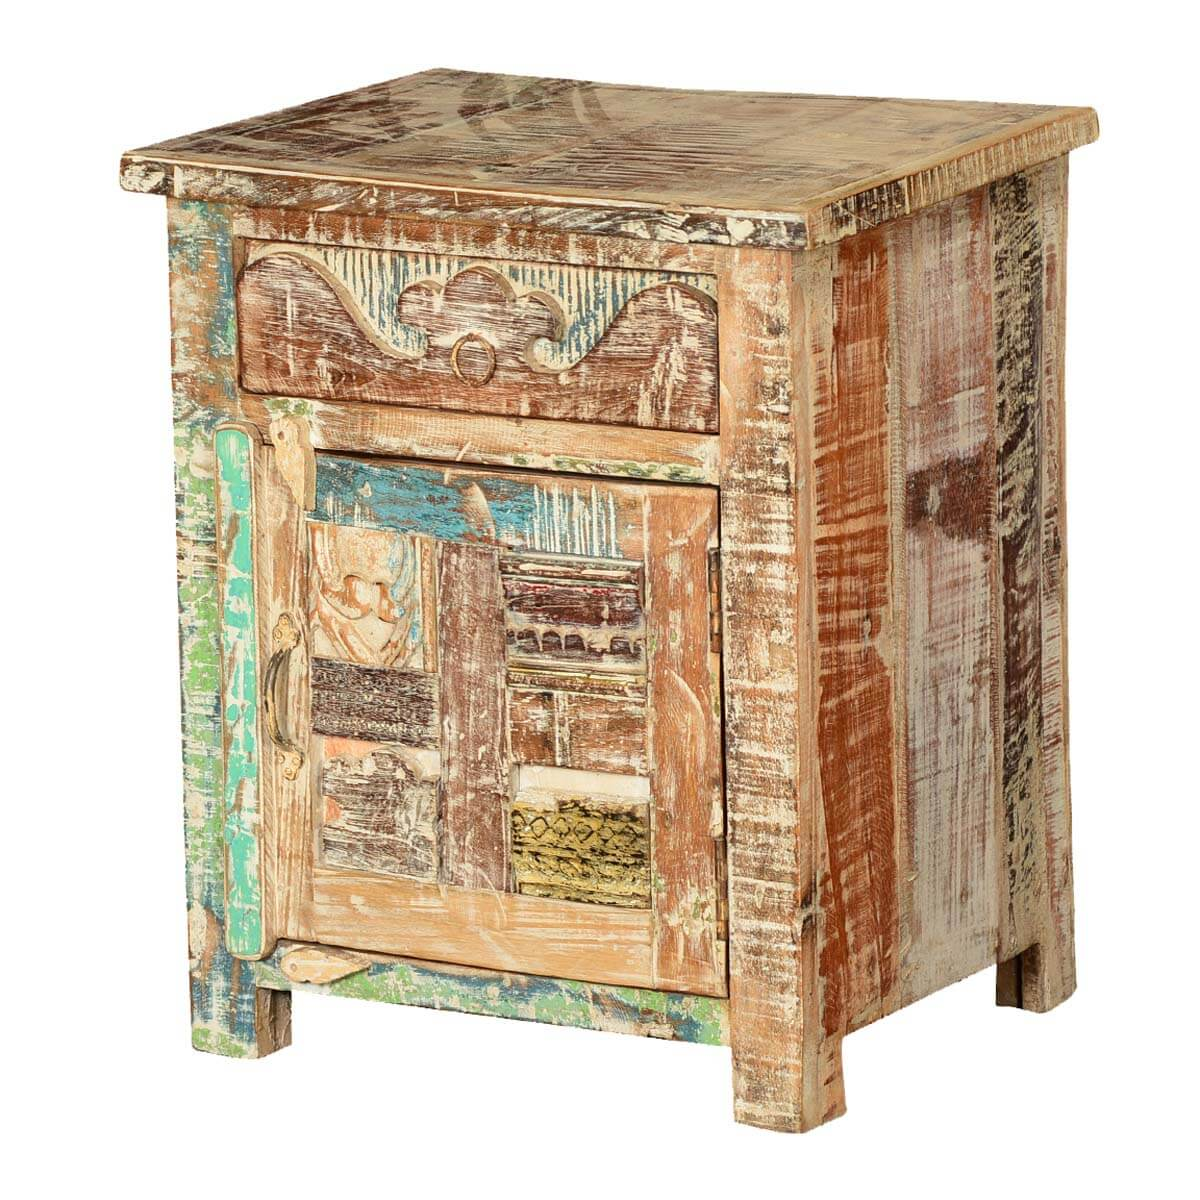 Wooden patches mango wood rustic nightstand mini cabinet for Rustic wood nightstand